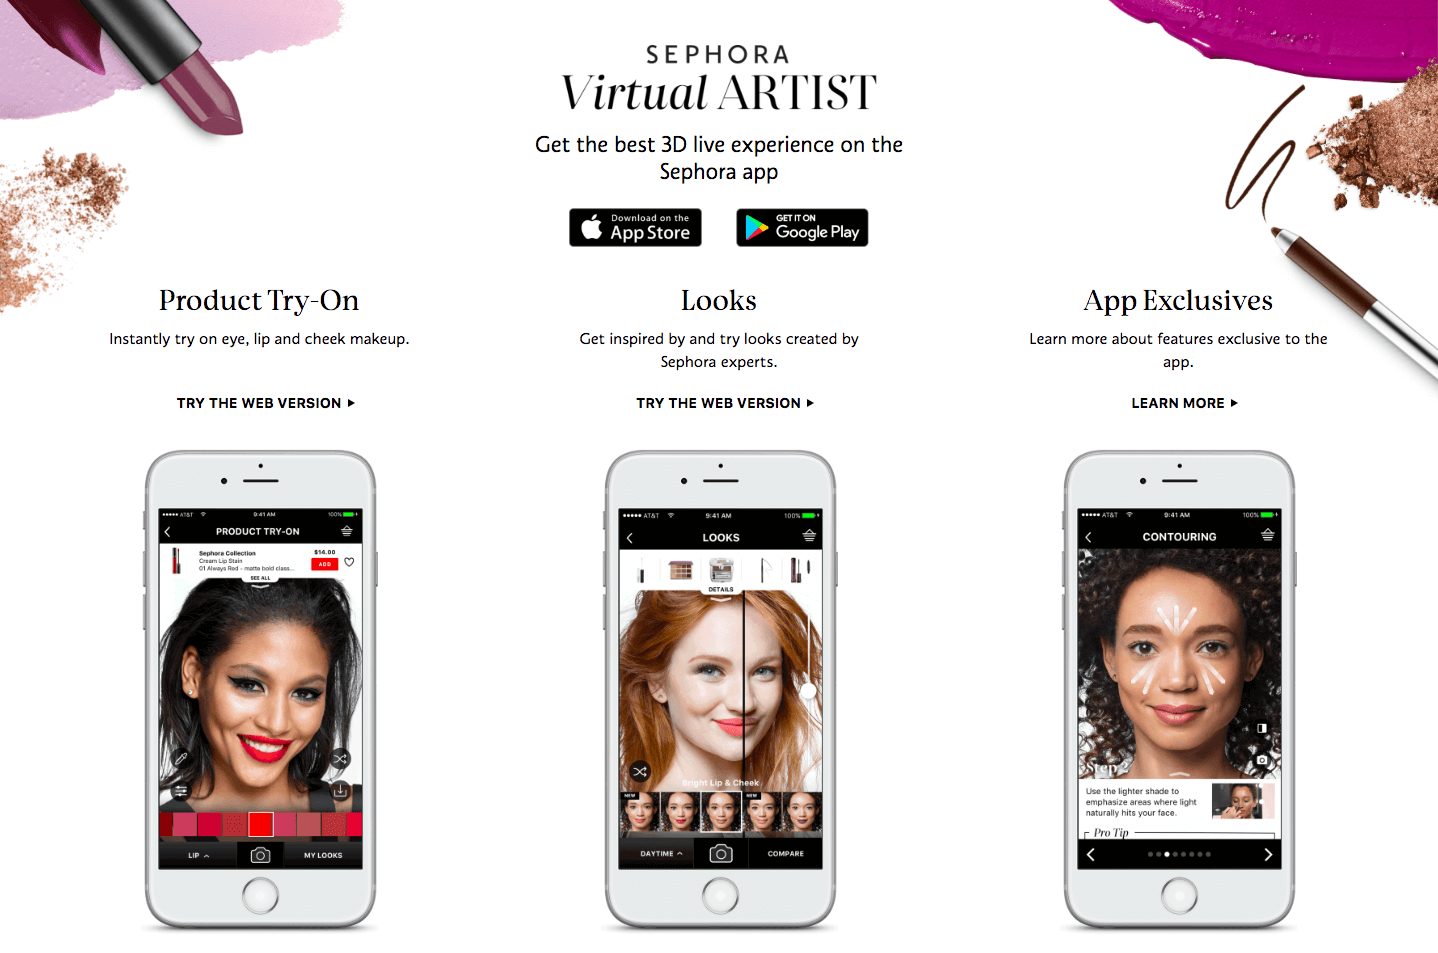 Best Customer Experiences Sephora Virtual Artist